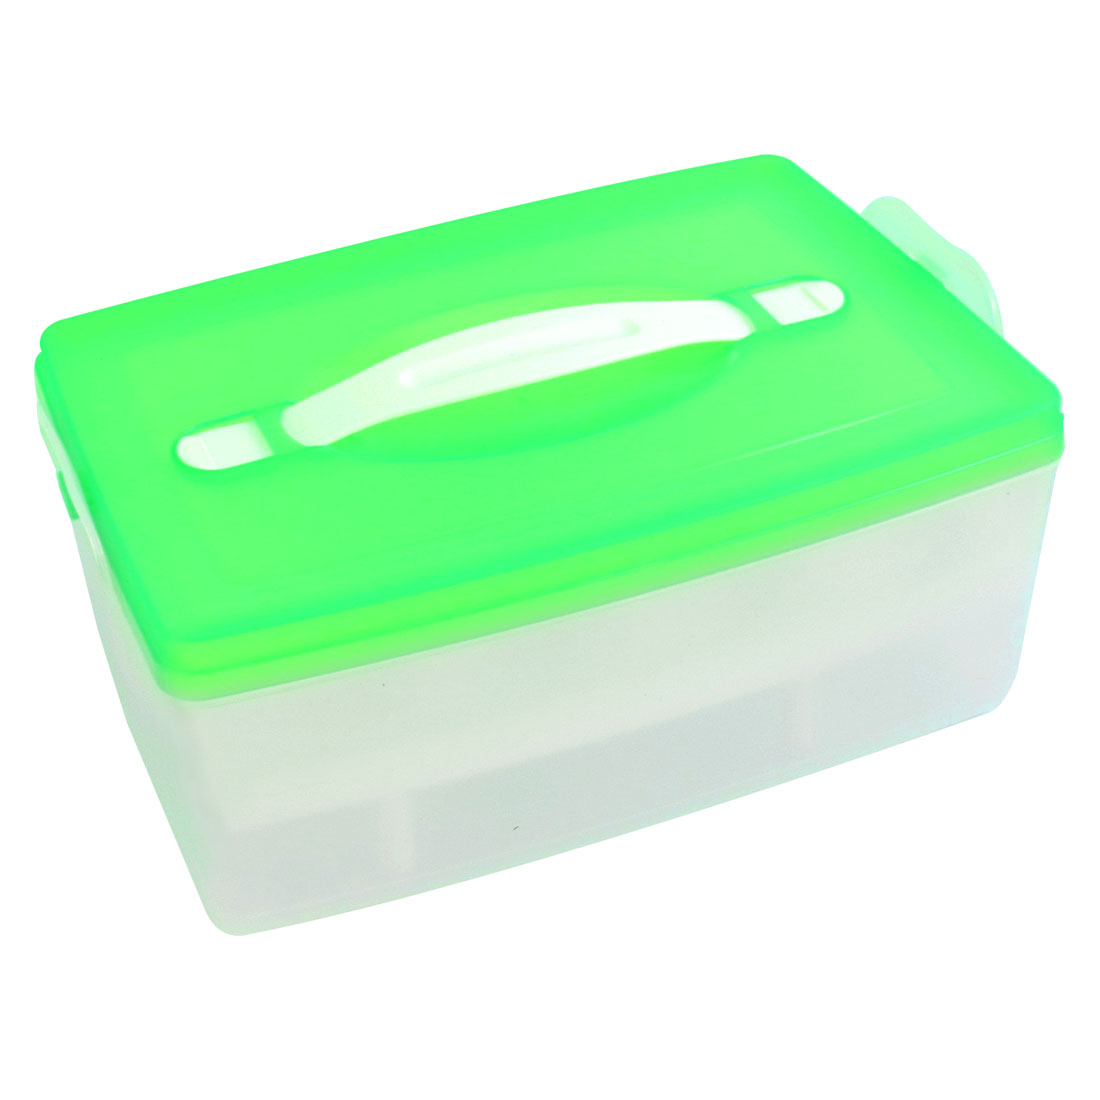 White Green Double Layer Freshness Preservation Storage Box Case for 24 Eggs